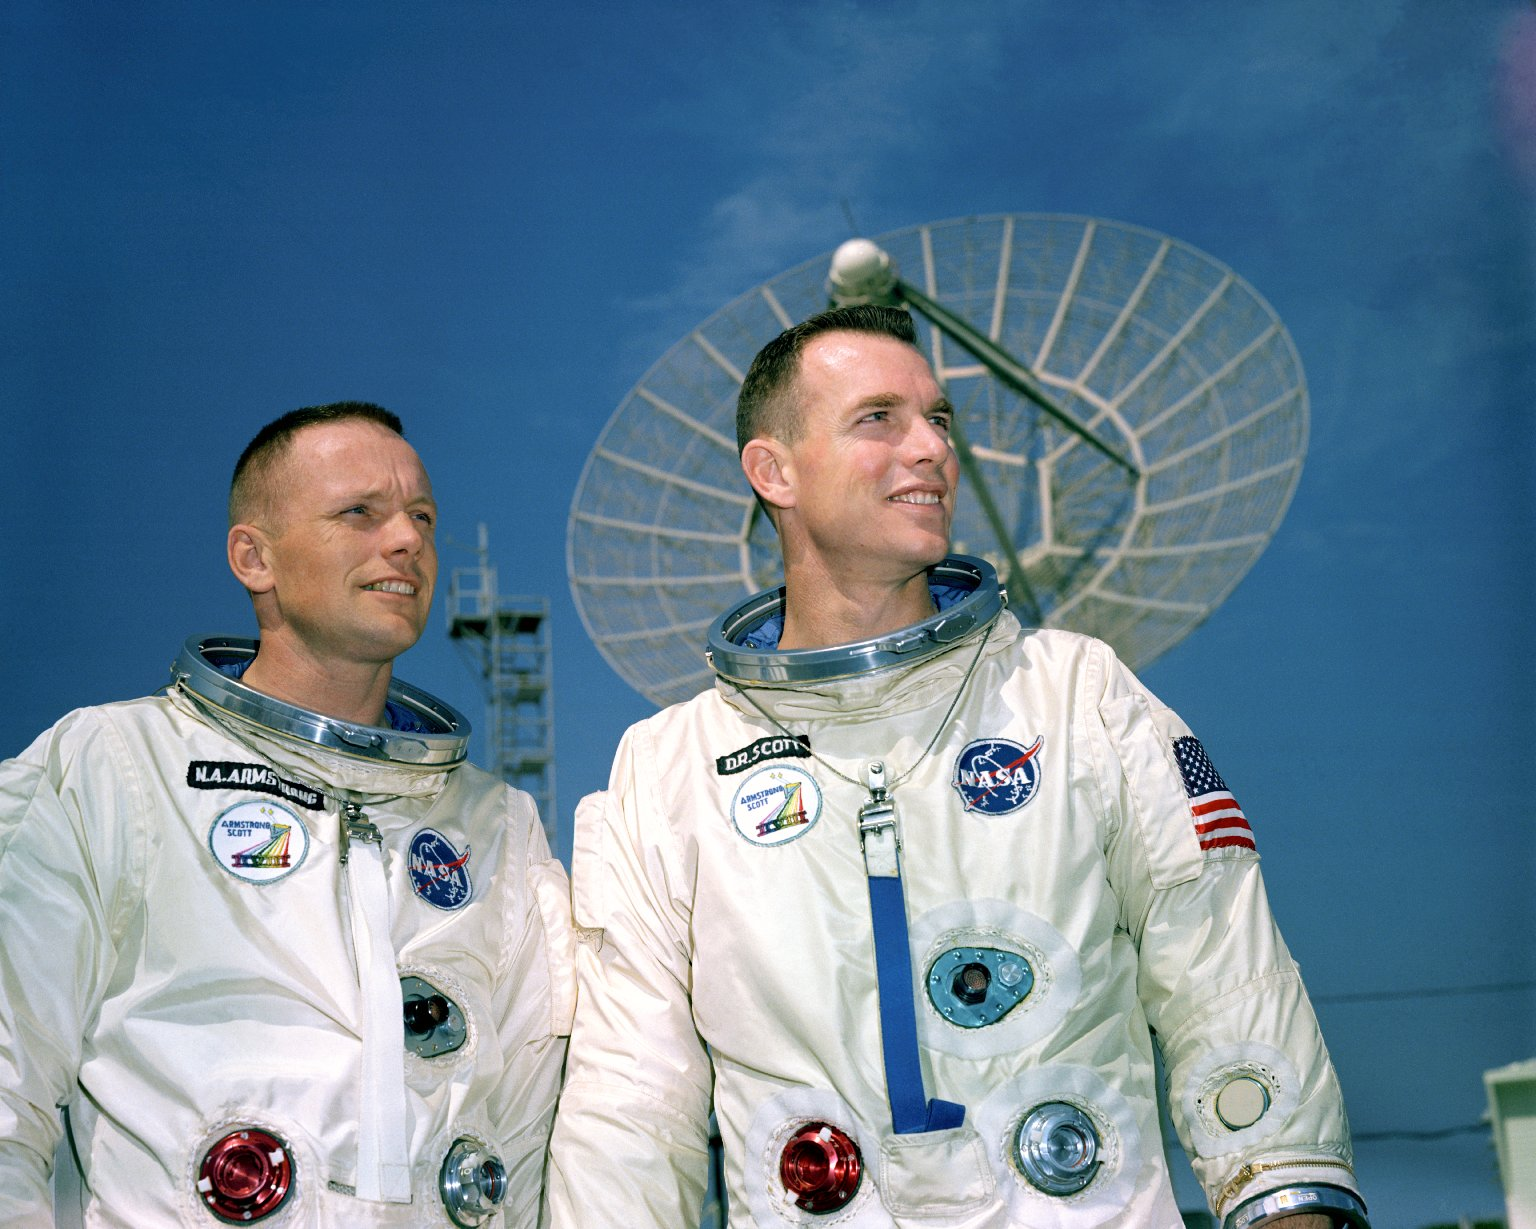 Astronauts Armstrong and Scott during photo session outside KSC